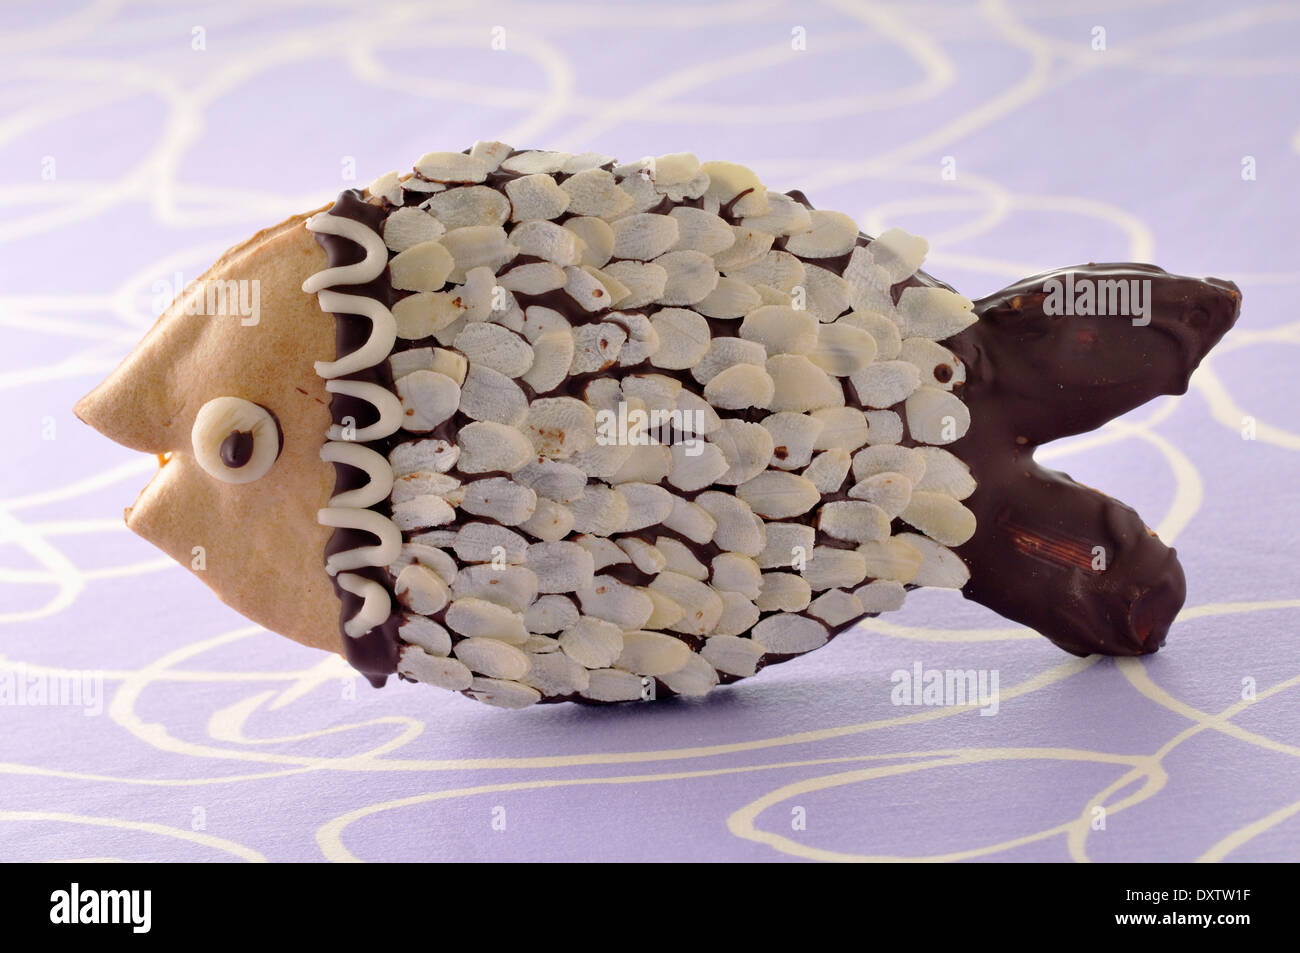 Chocolate fish Stock Photo, Royalty Free Image: 68158651 - Alamy